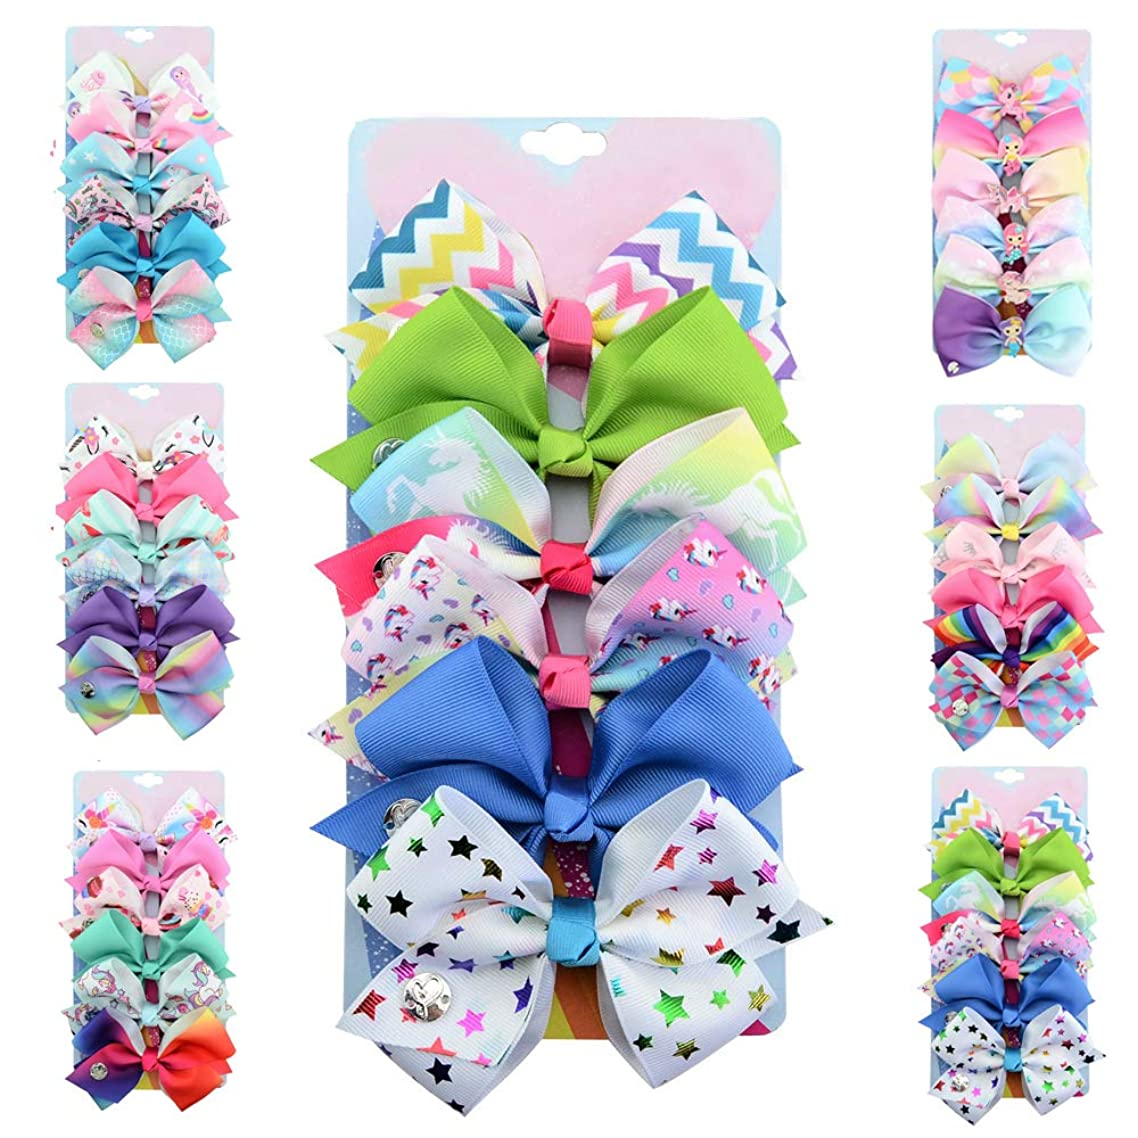 [6-Pack] 5 Inch Cute Mermaid Unicorn Rainbow Hair Bows Clip Gift Bundle for Girls Toddlers Kids (Star Series)